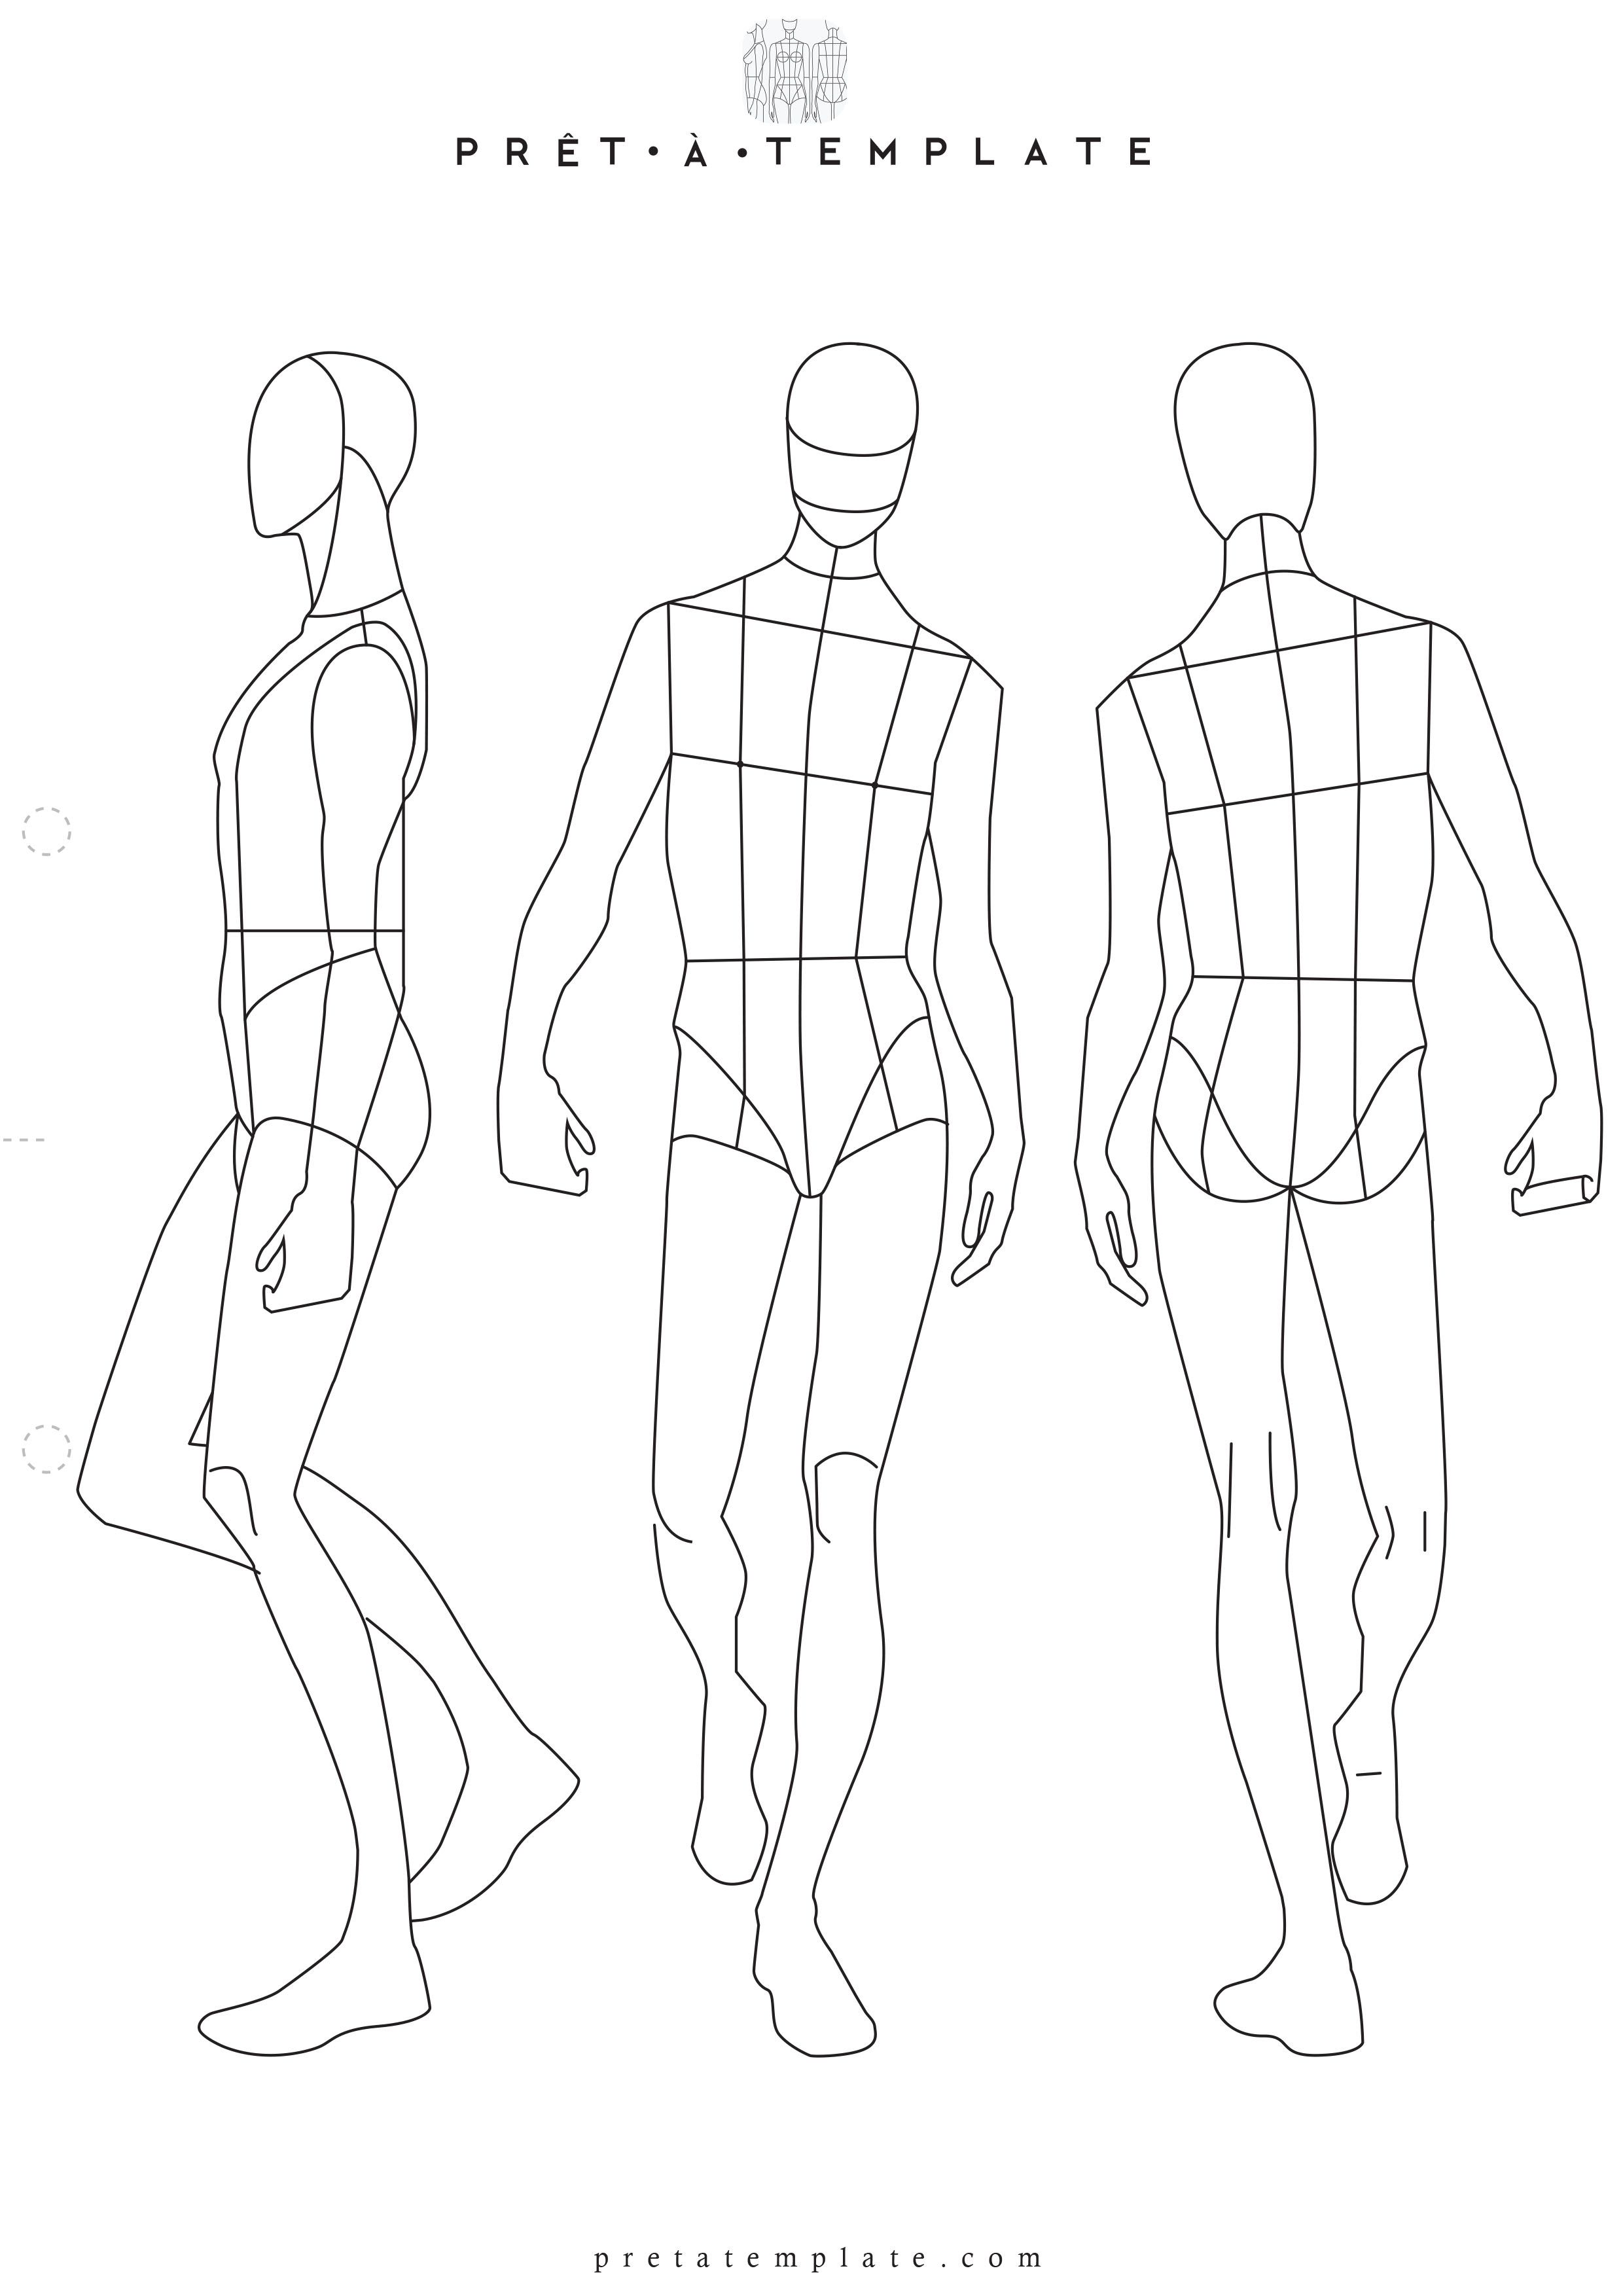 Download Fashion Figure Templates Pret A Template Illustration Fashion Design Fashion Design Sketchbook Fashion Figure Drawing